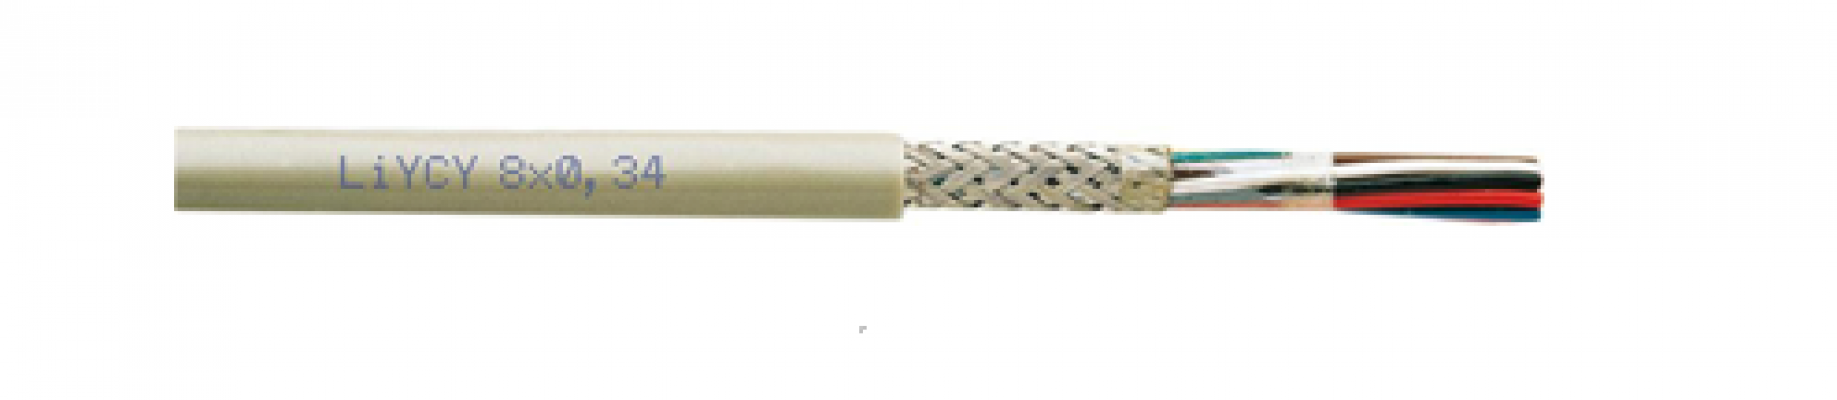 Screened electronic cable LiYCY